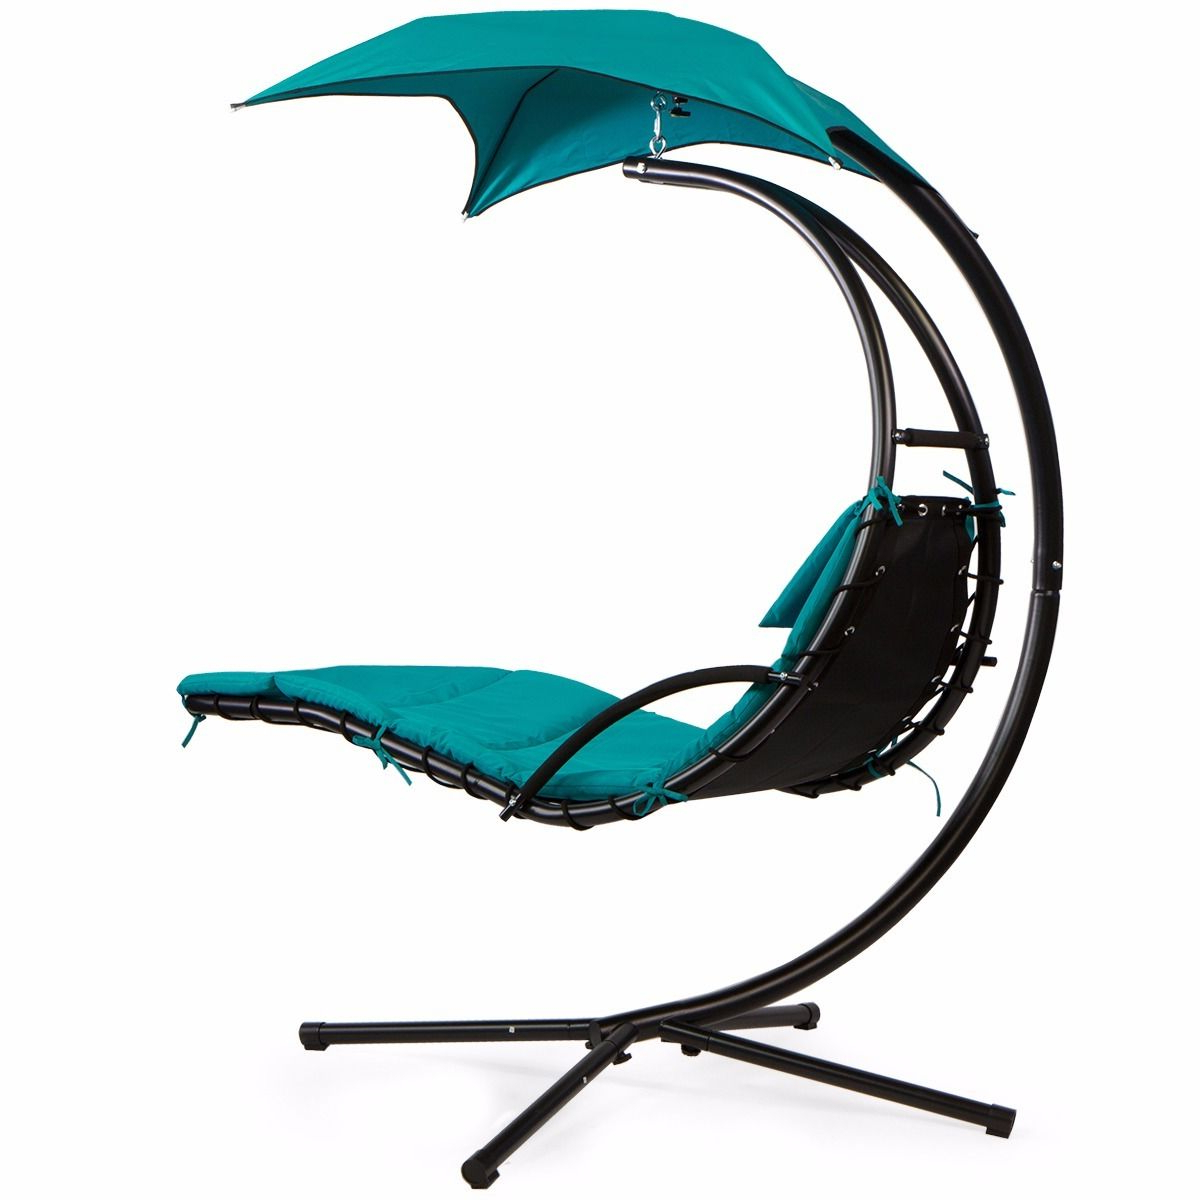 Most Recent Details About Barton Patio Hanging Helicopter Dream Lounger Chair Stand Swing Hammock Chair For Outdoor Pvc Coated Polyester Porch Swings With Stand (Gallery 19 of 30)